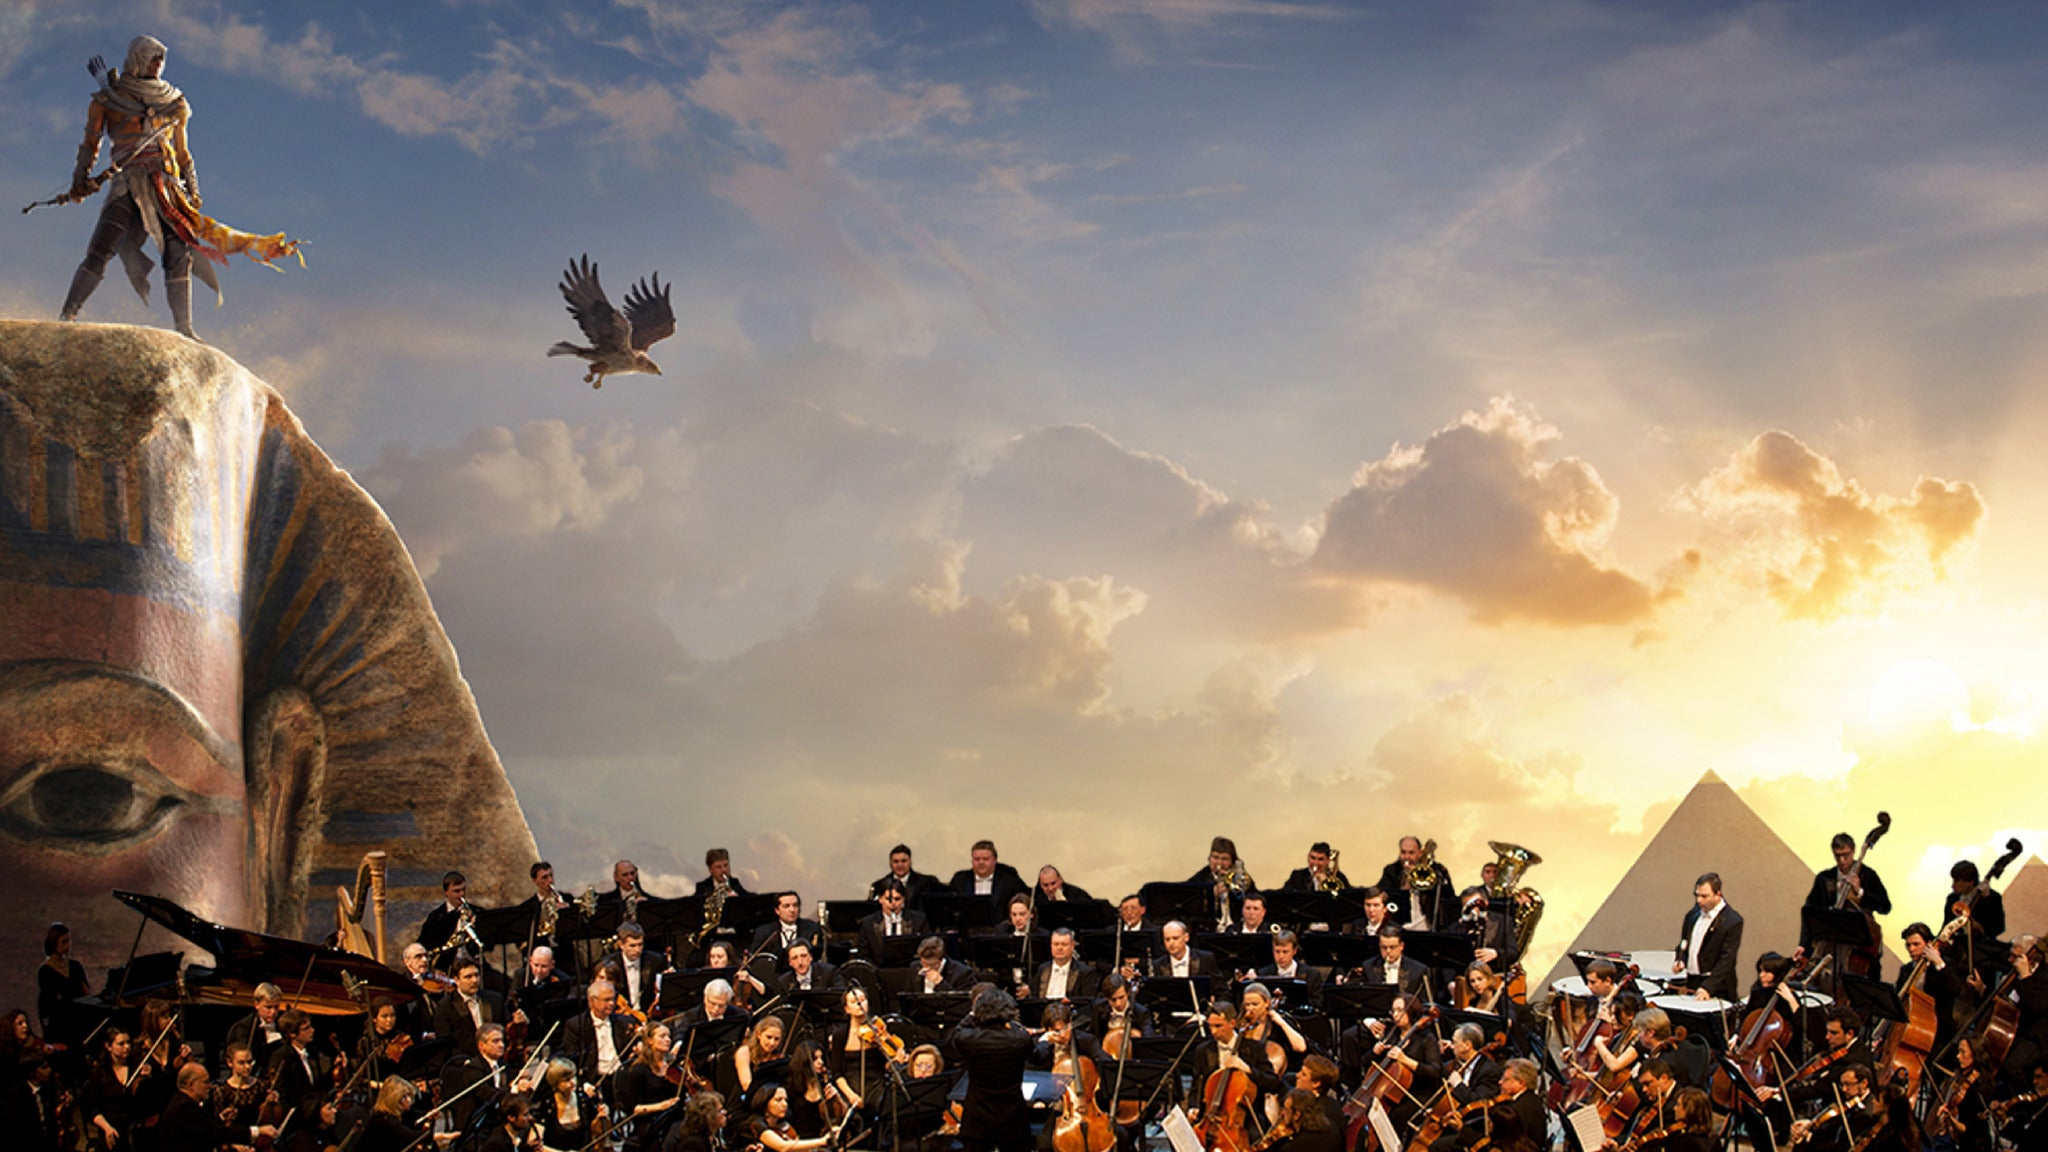 Assassin's Creed Symphony at Dolby Theatre